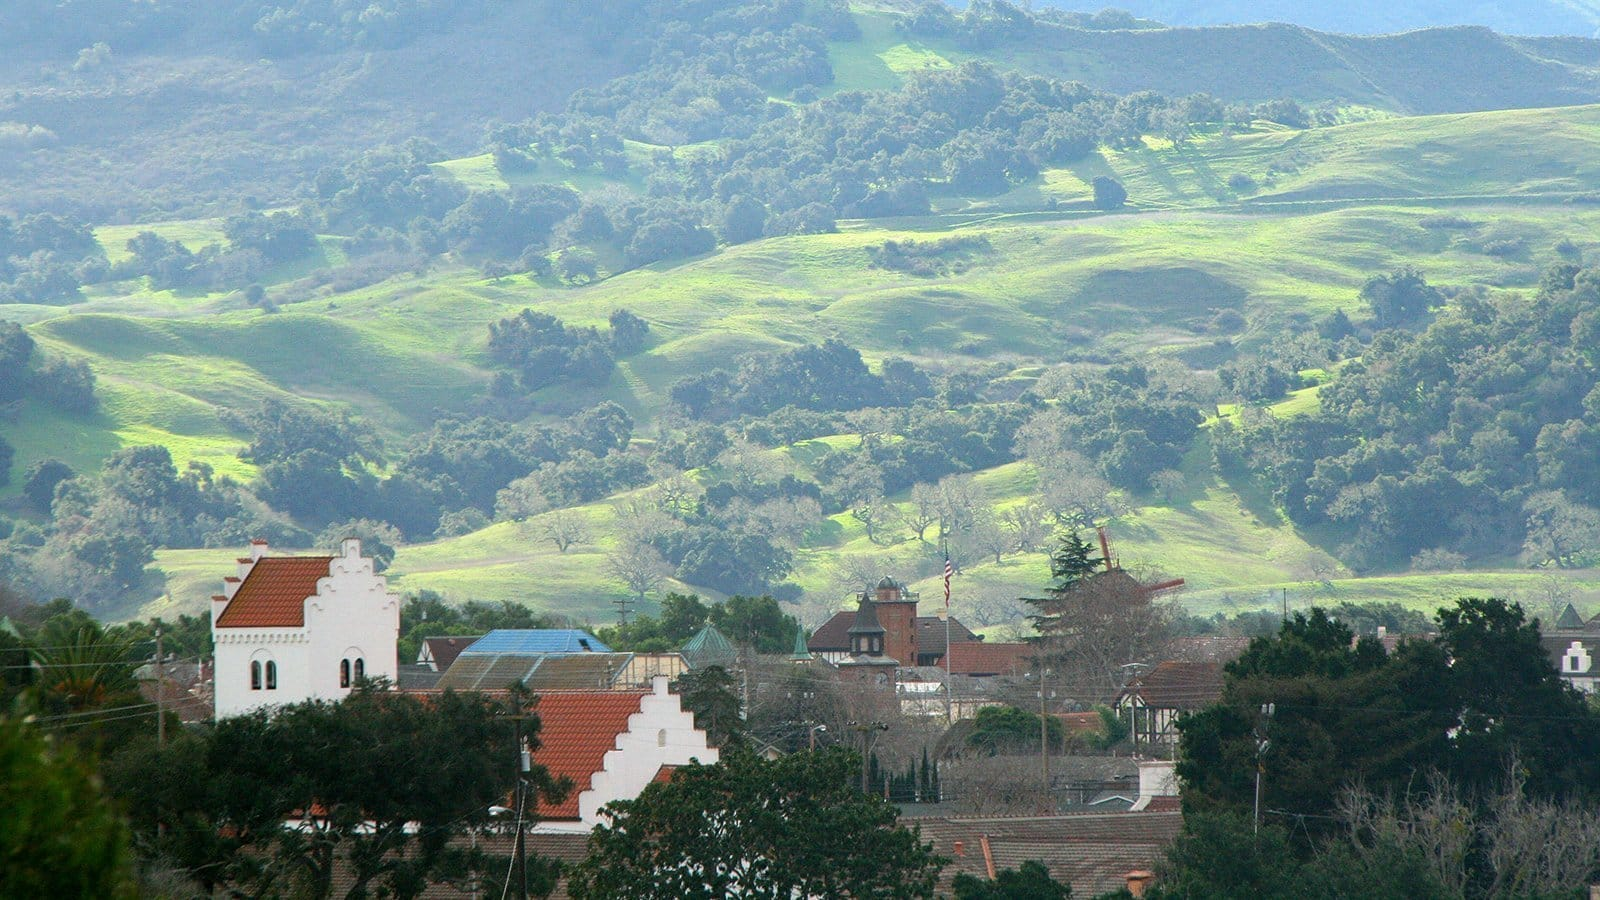 A view of Solvang from a hill above the town. A beautiful picturesque scene with the rolling hills of the Santa Ynez Mountains in the background.